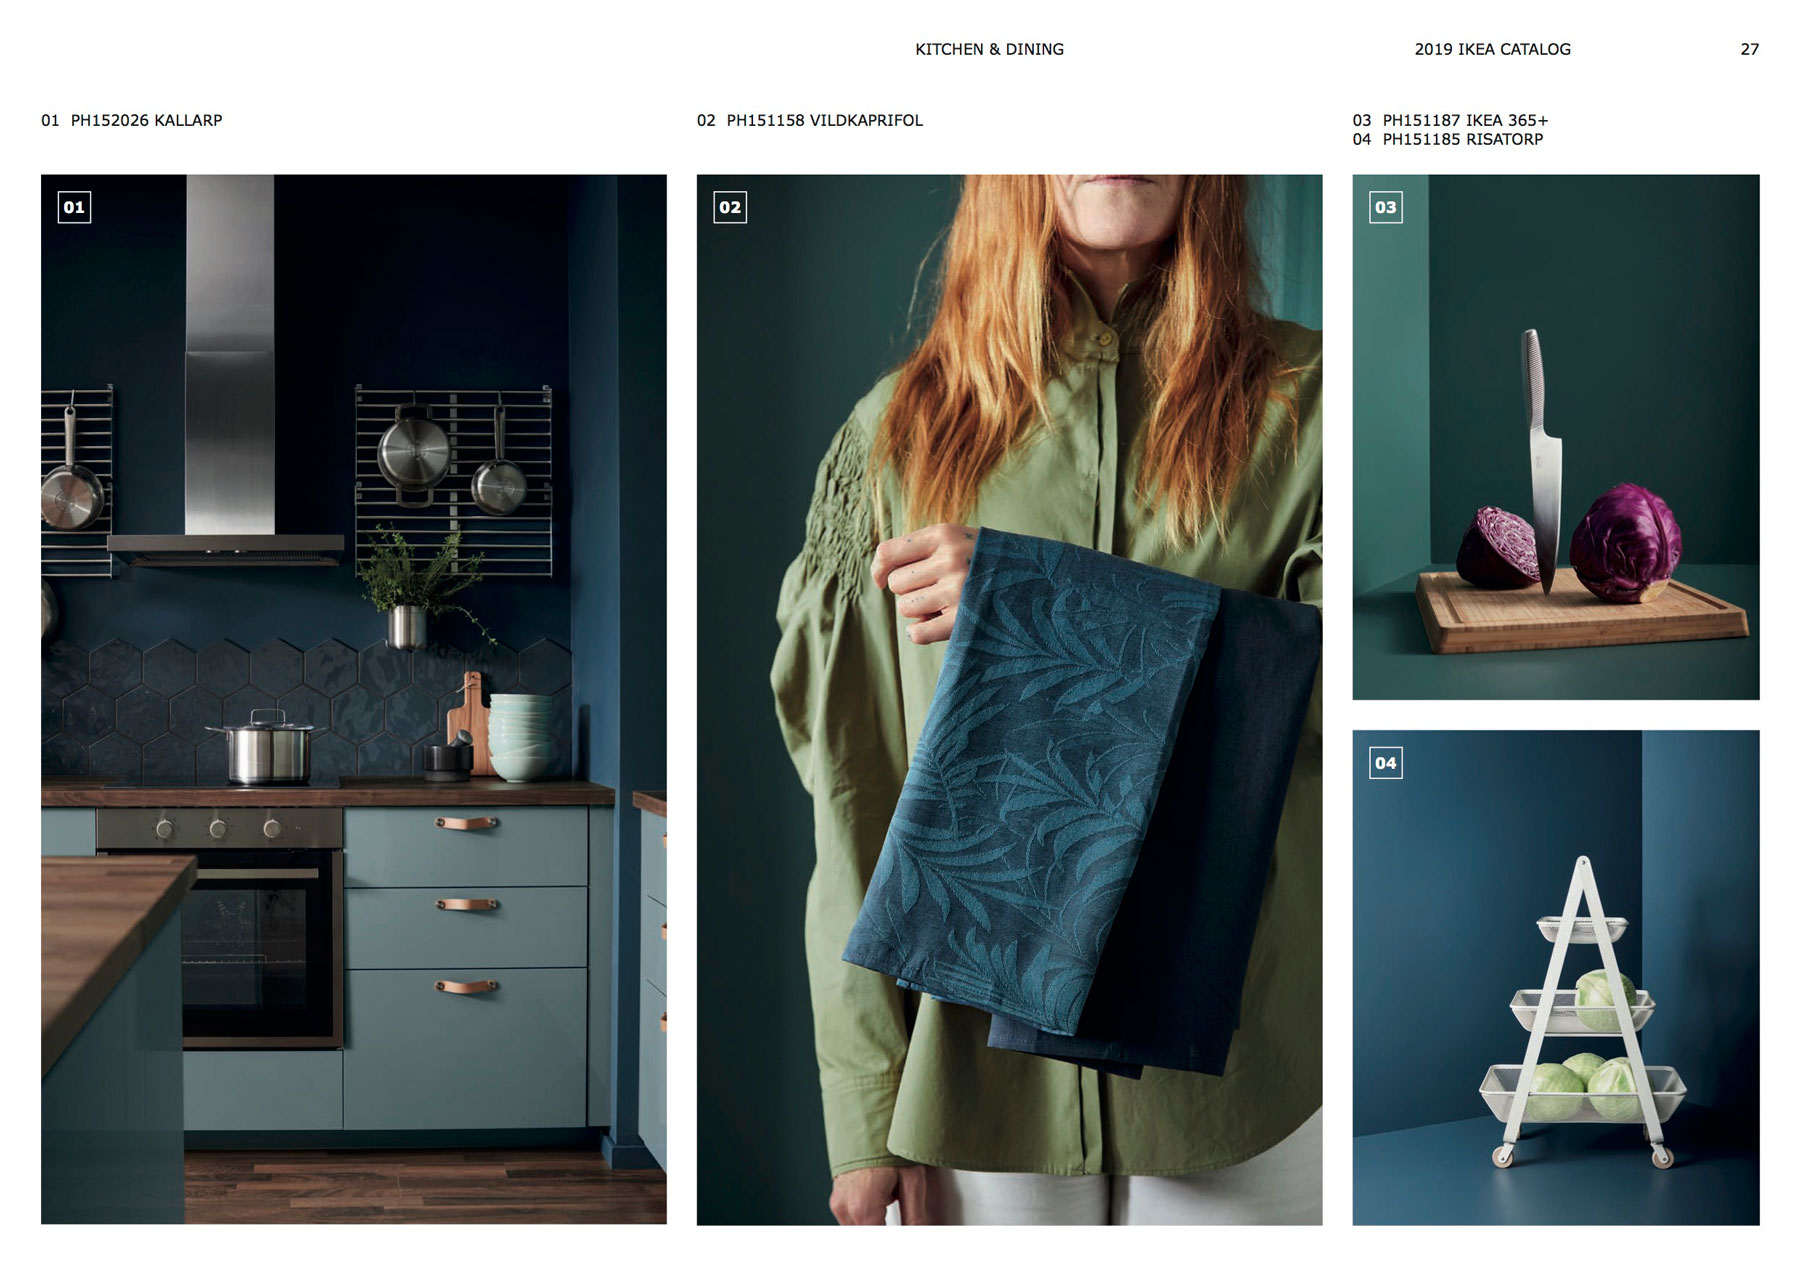 Ikea Catalog 2019 Design Trends bold kitchens